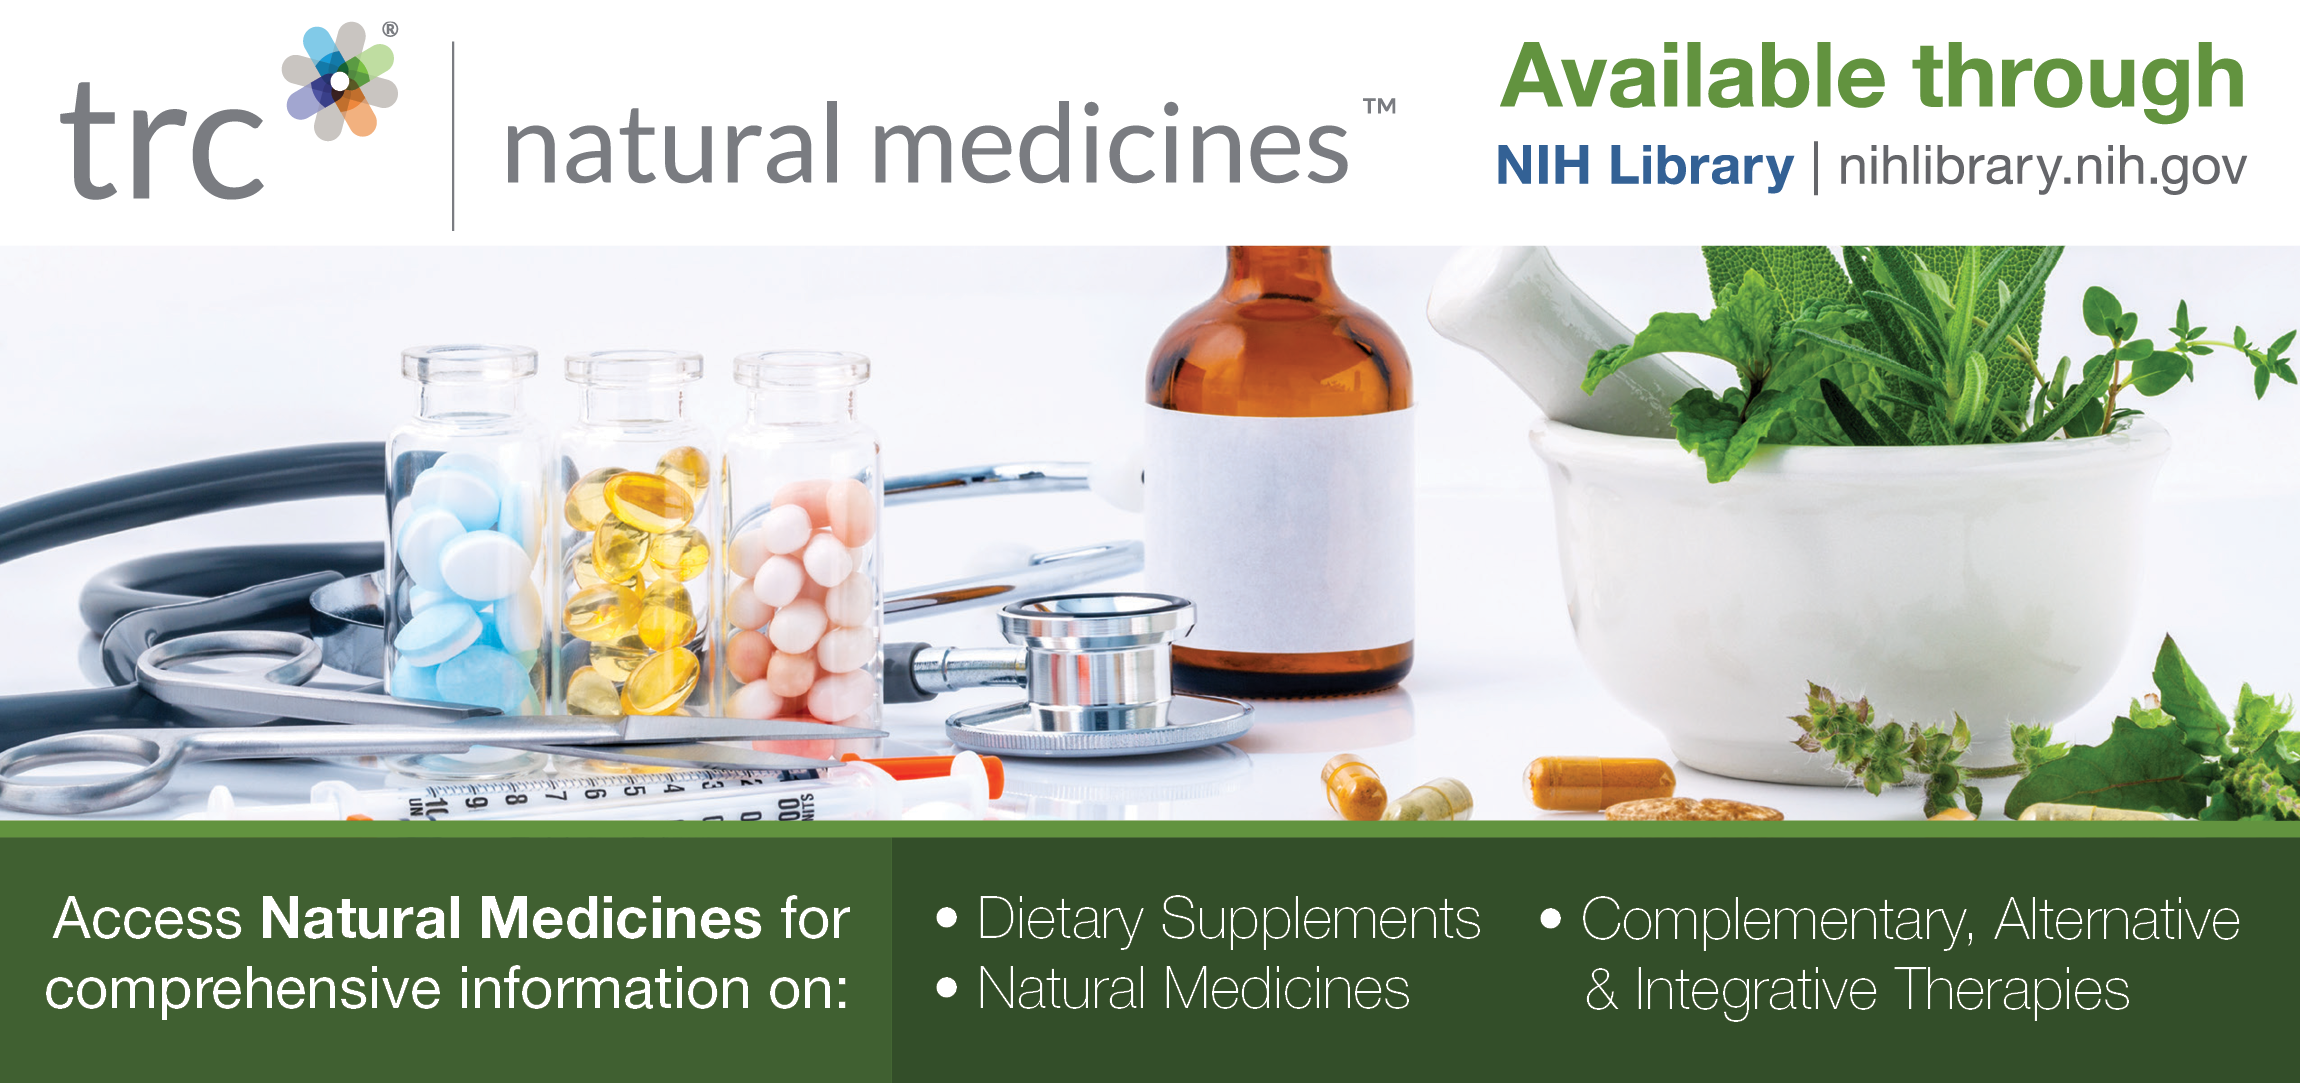 Natural Medicines Database Available to NIH Staff | NIH Library